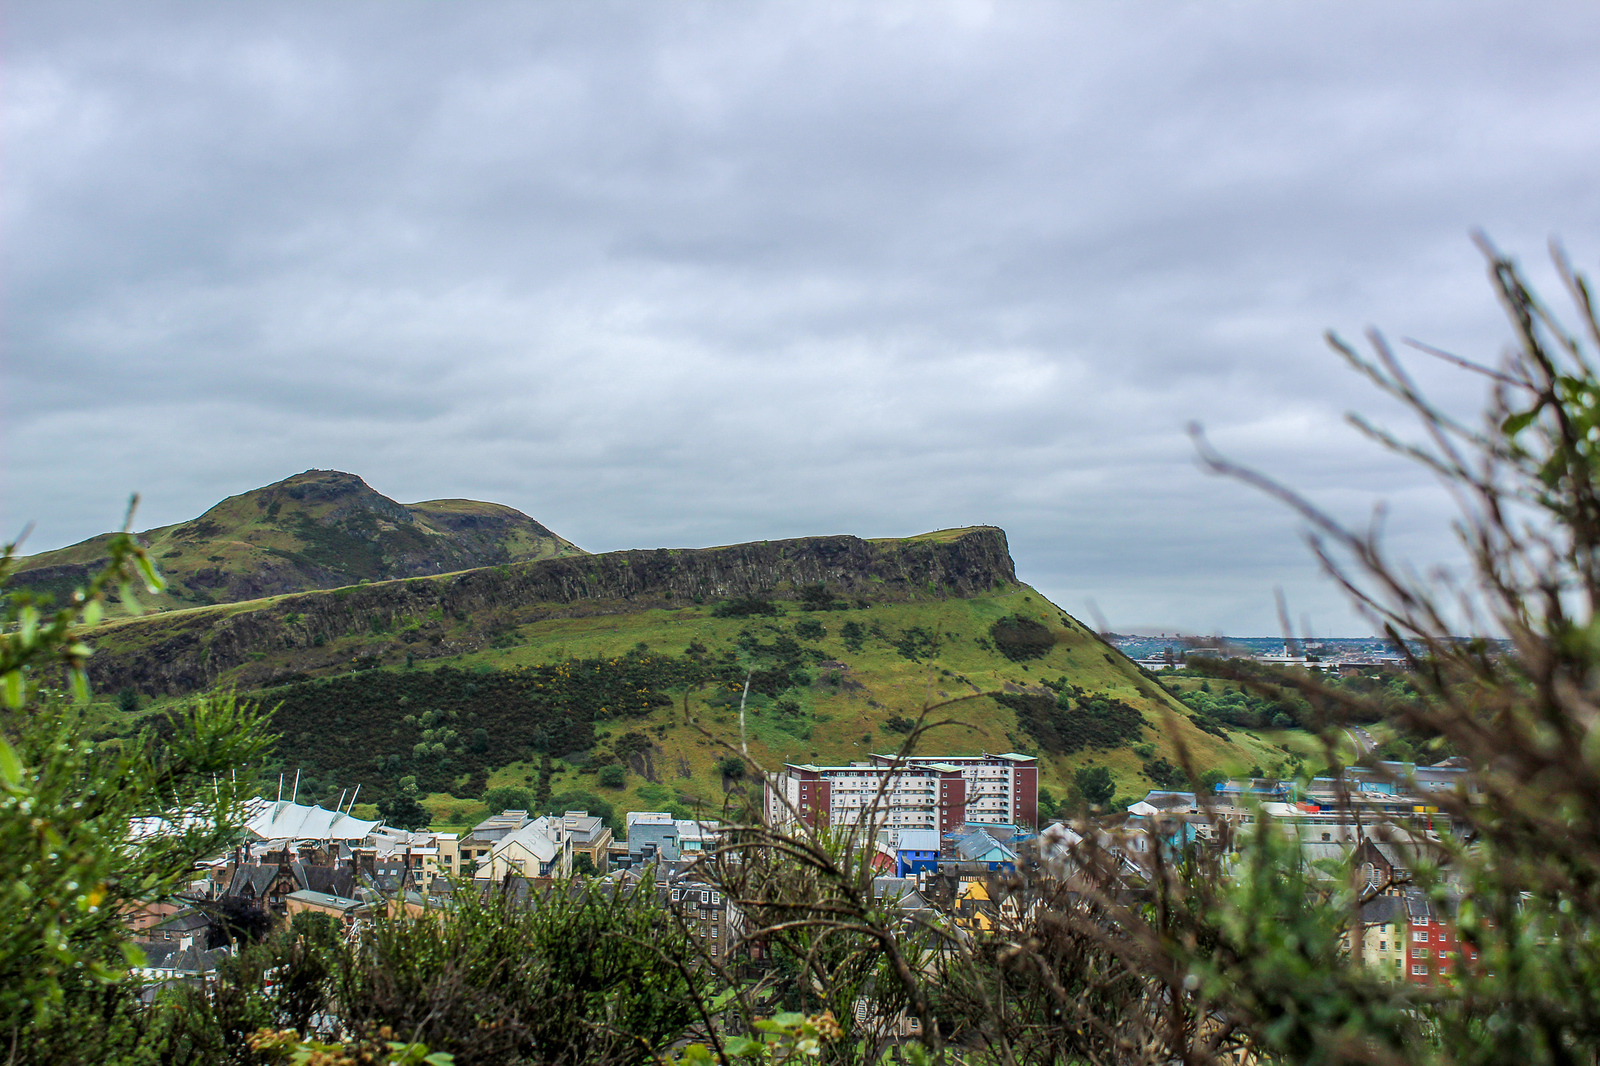 a weekend trip to edinburgh means hiking arthur's seat